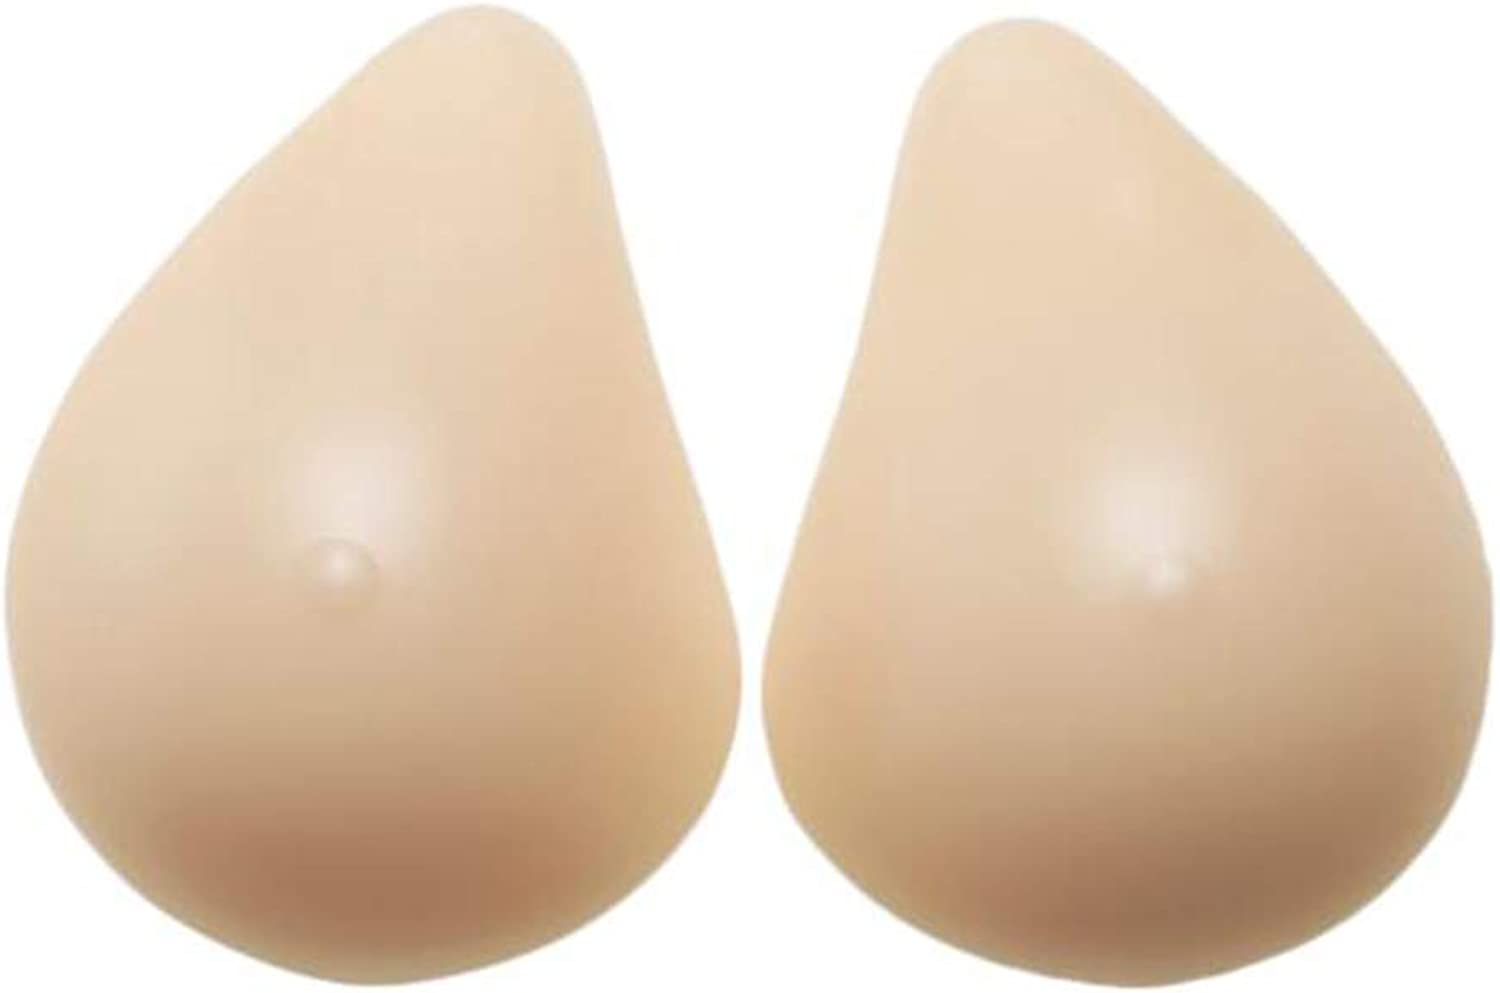 False Breast Artificial Breasts Silicone Breast Forms for Postoperative Crossdresser Pair Breasts Chest Special Predection Sets